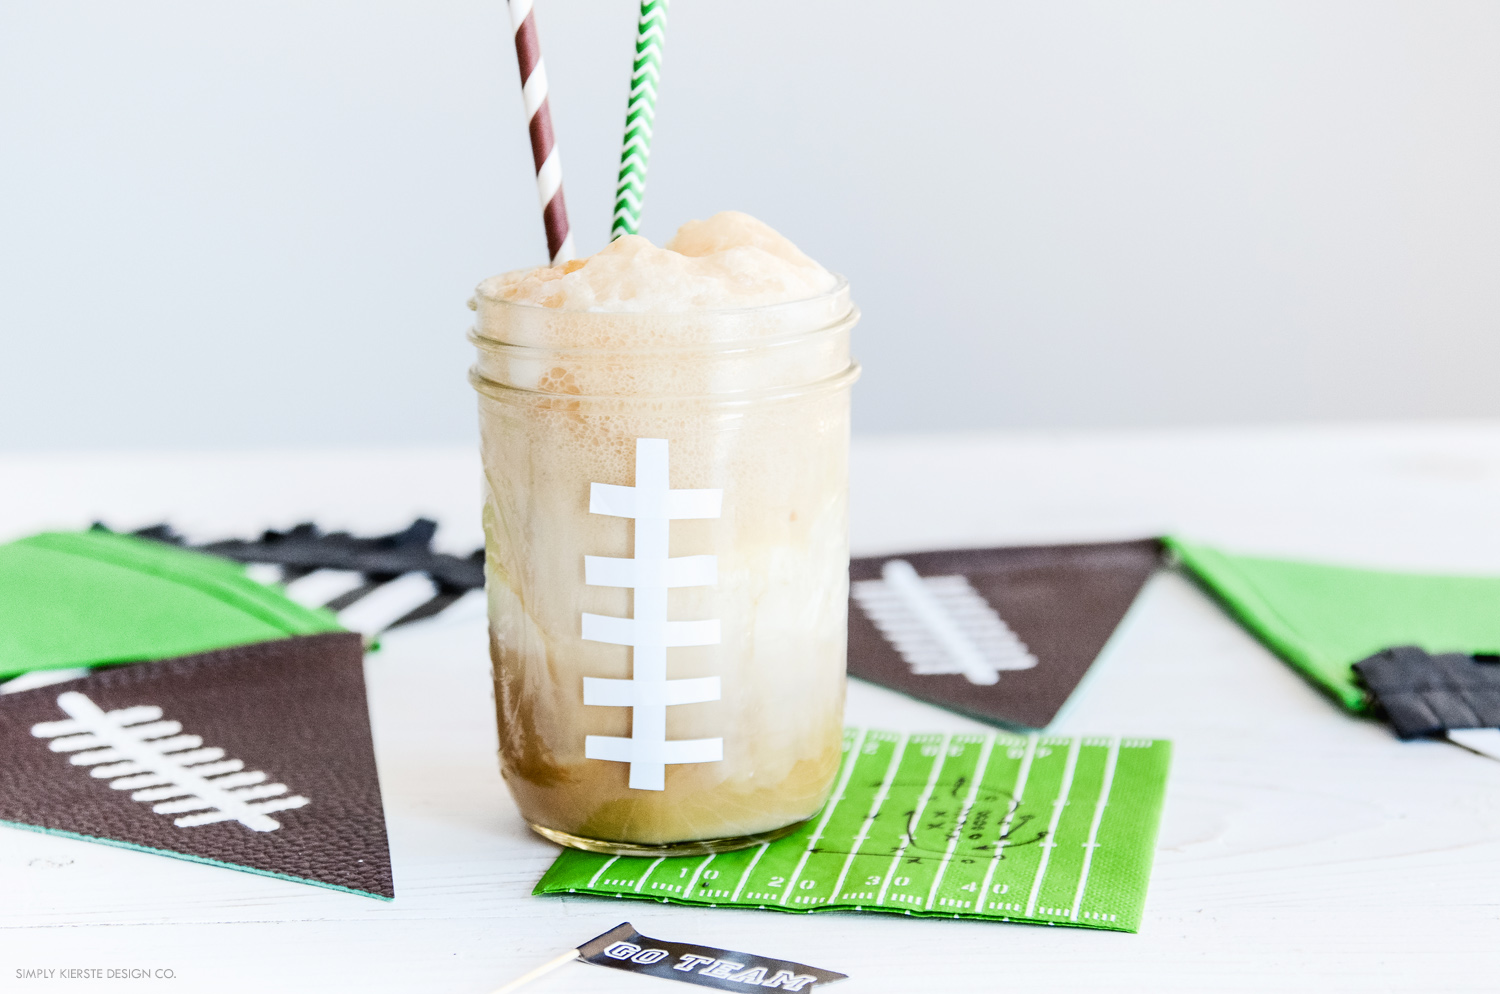 Football Root Beer Floats | Game Day Treats | oldsaltfarm.com #footballtreats #gamedayfood #masonjarideas #rootbeerfloats